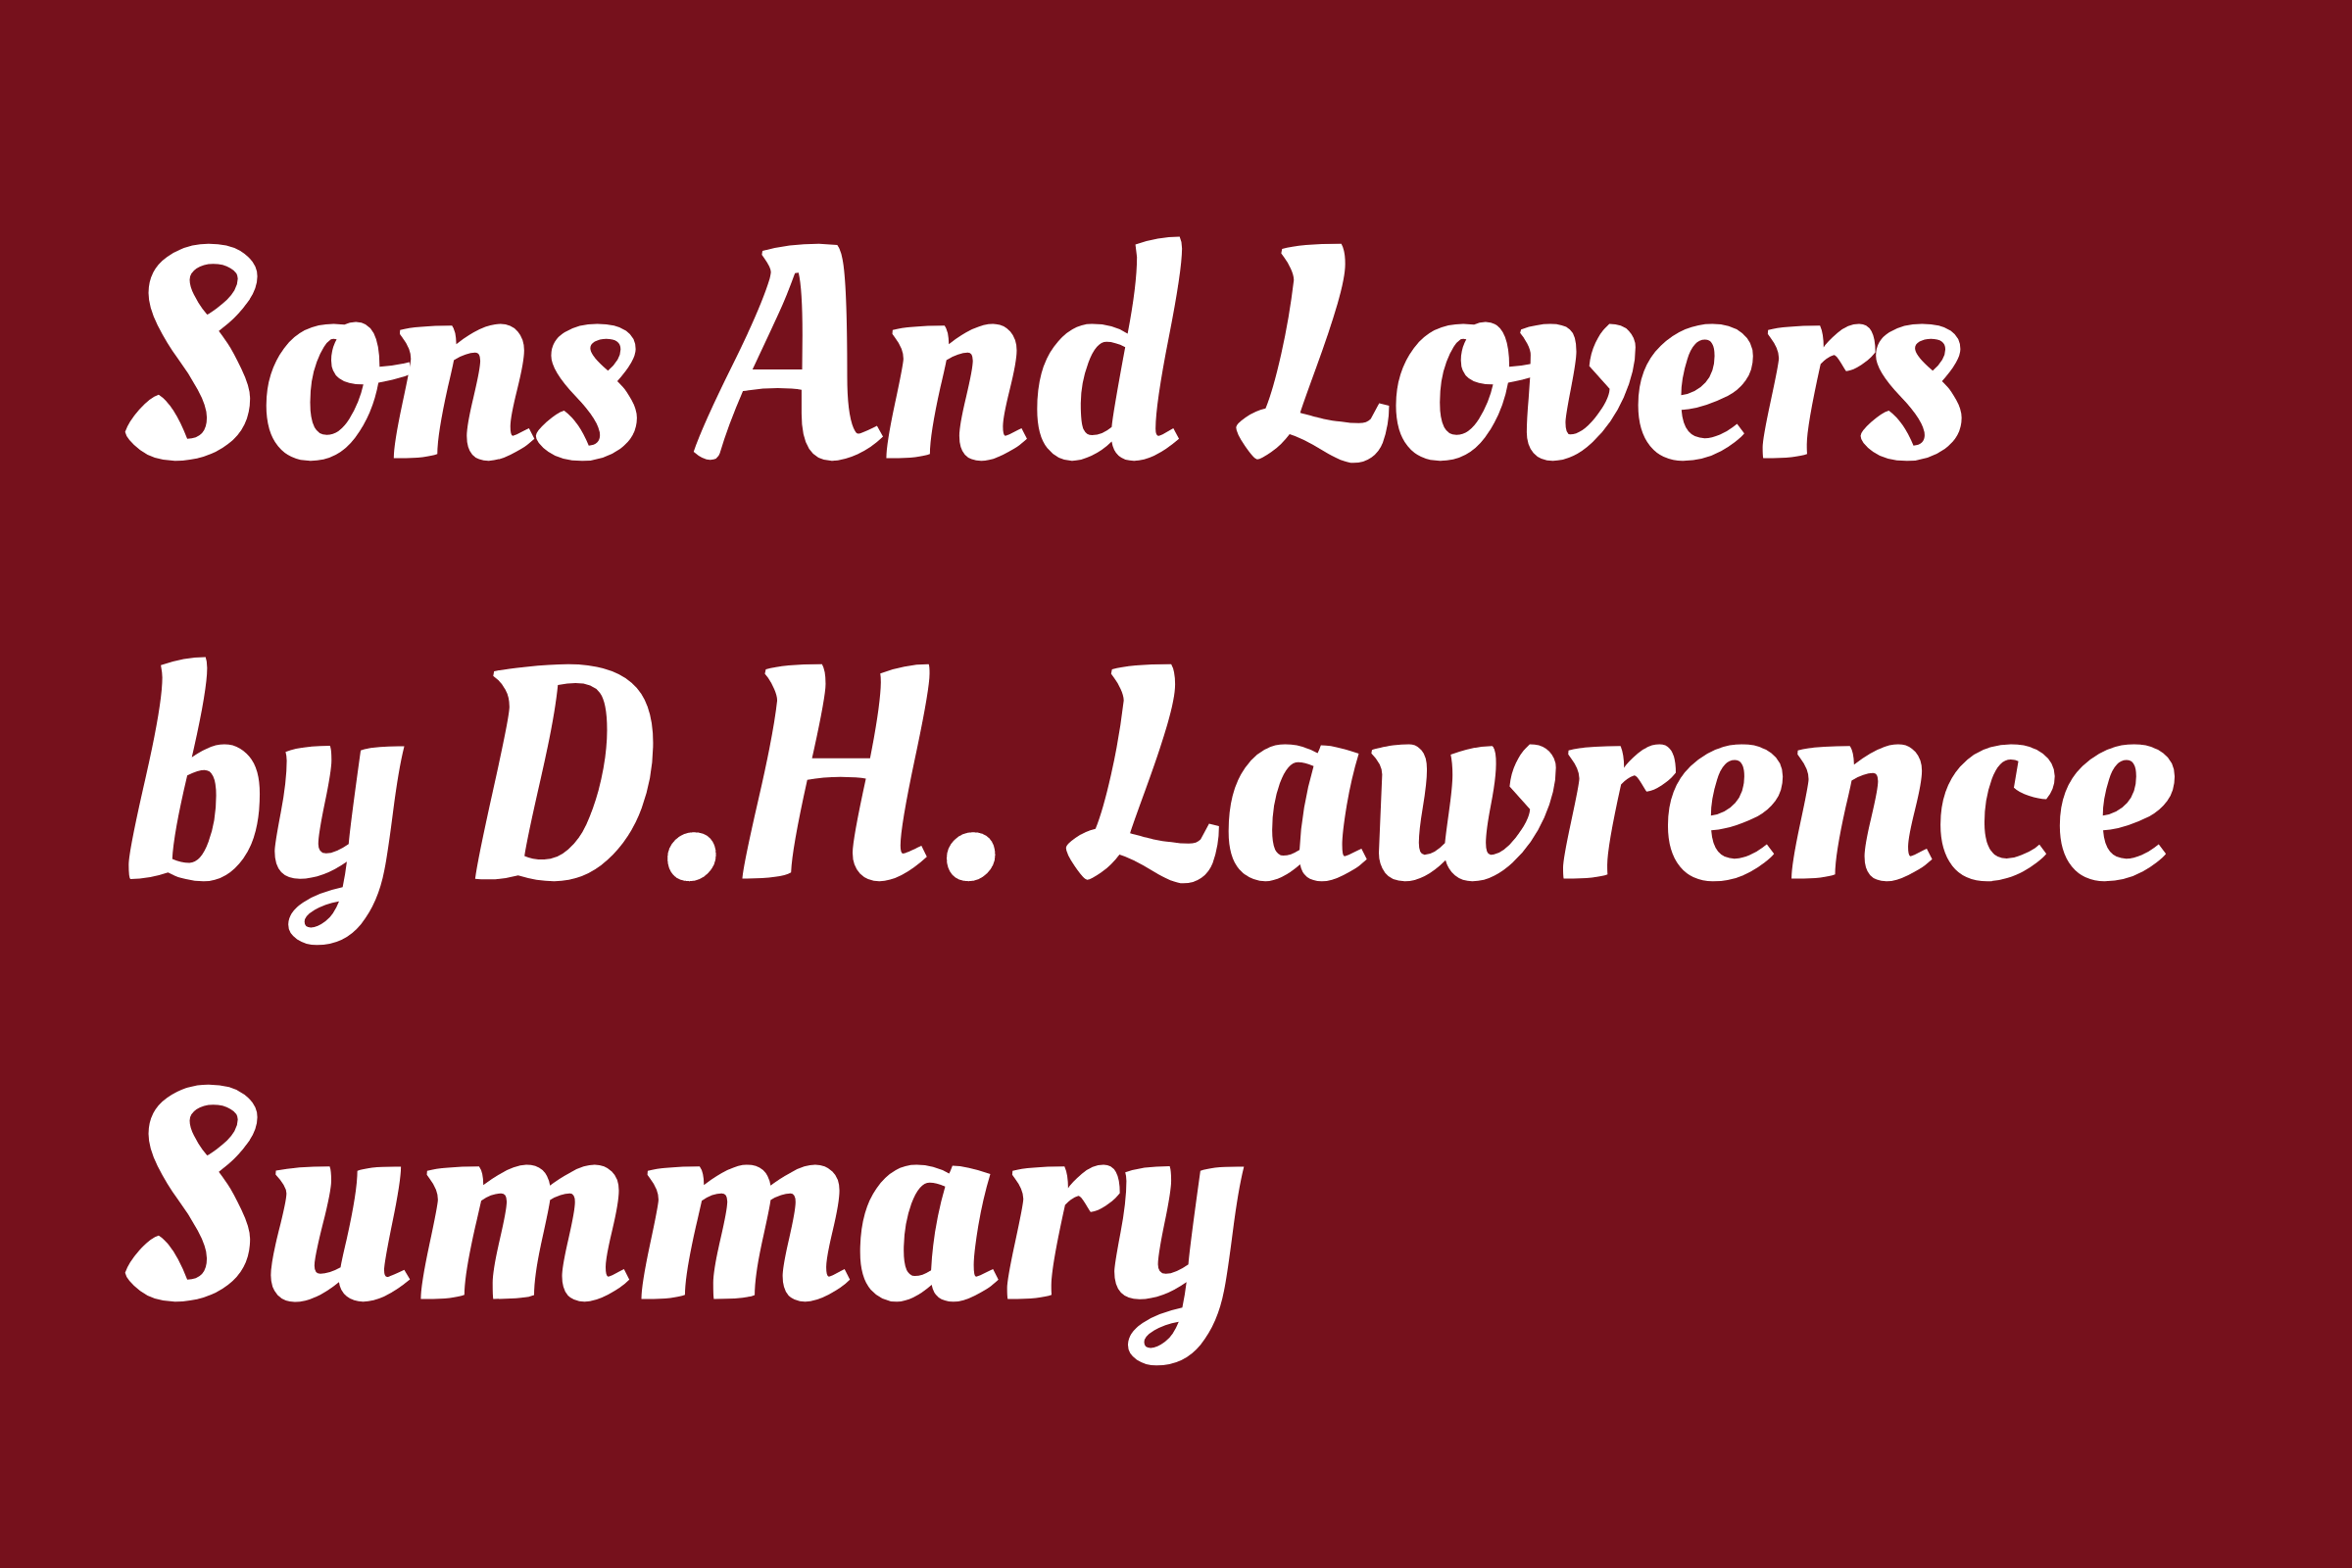 Sons And Lovers by D.H. Lawrence Summary